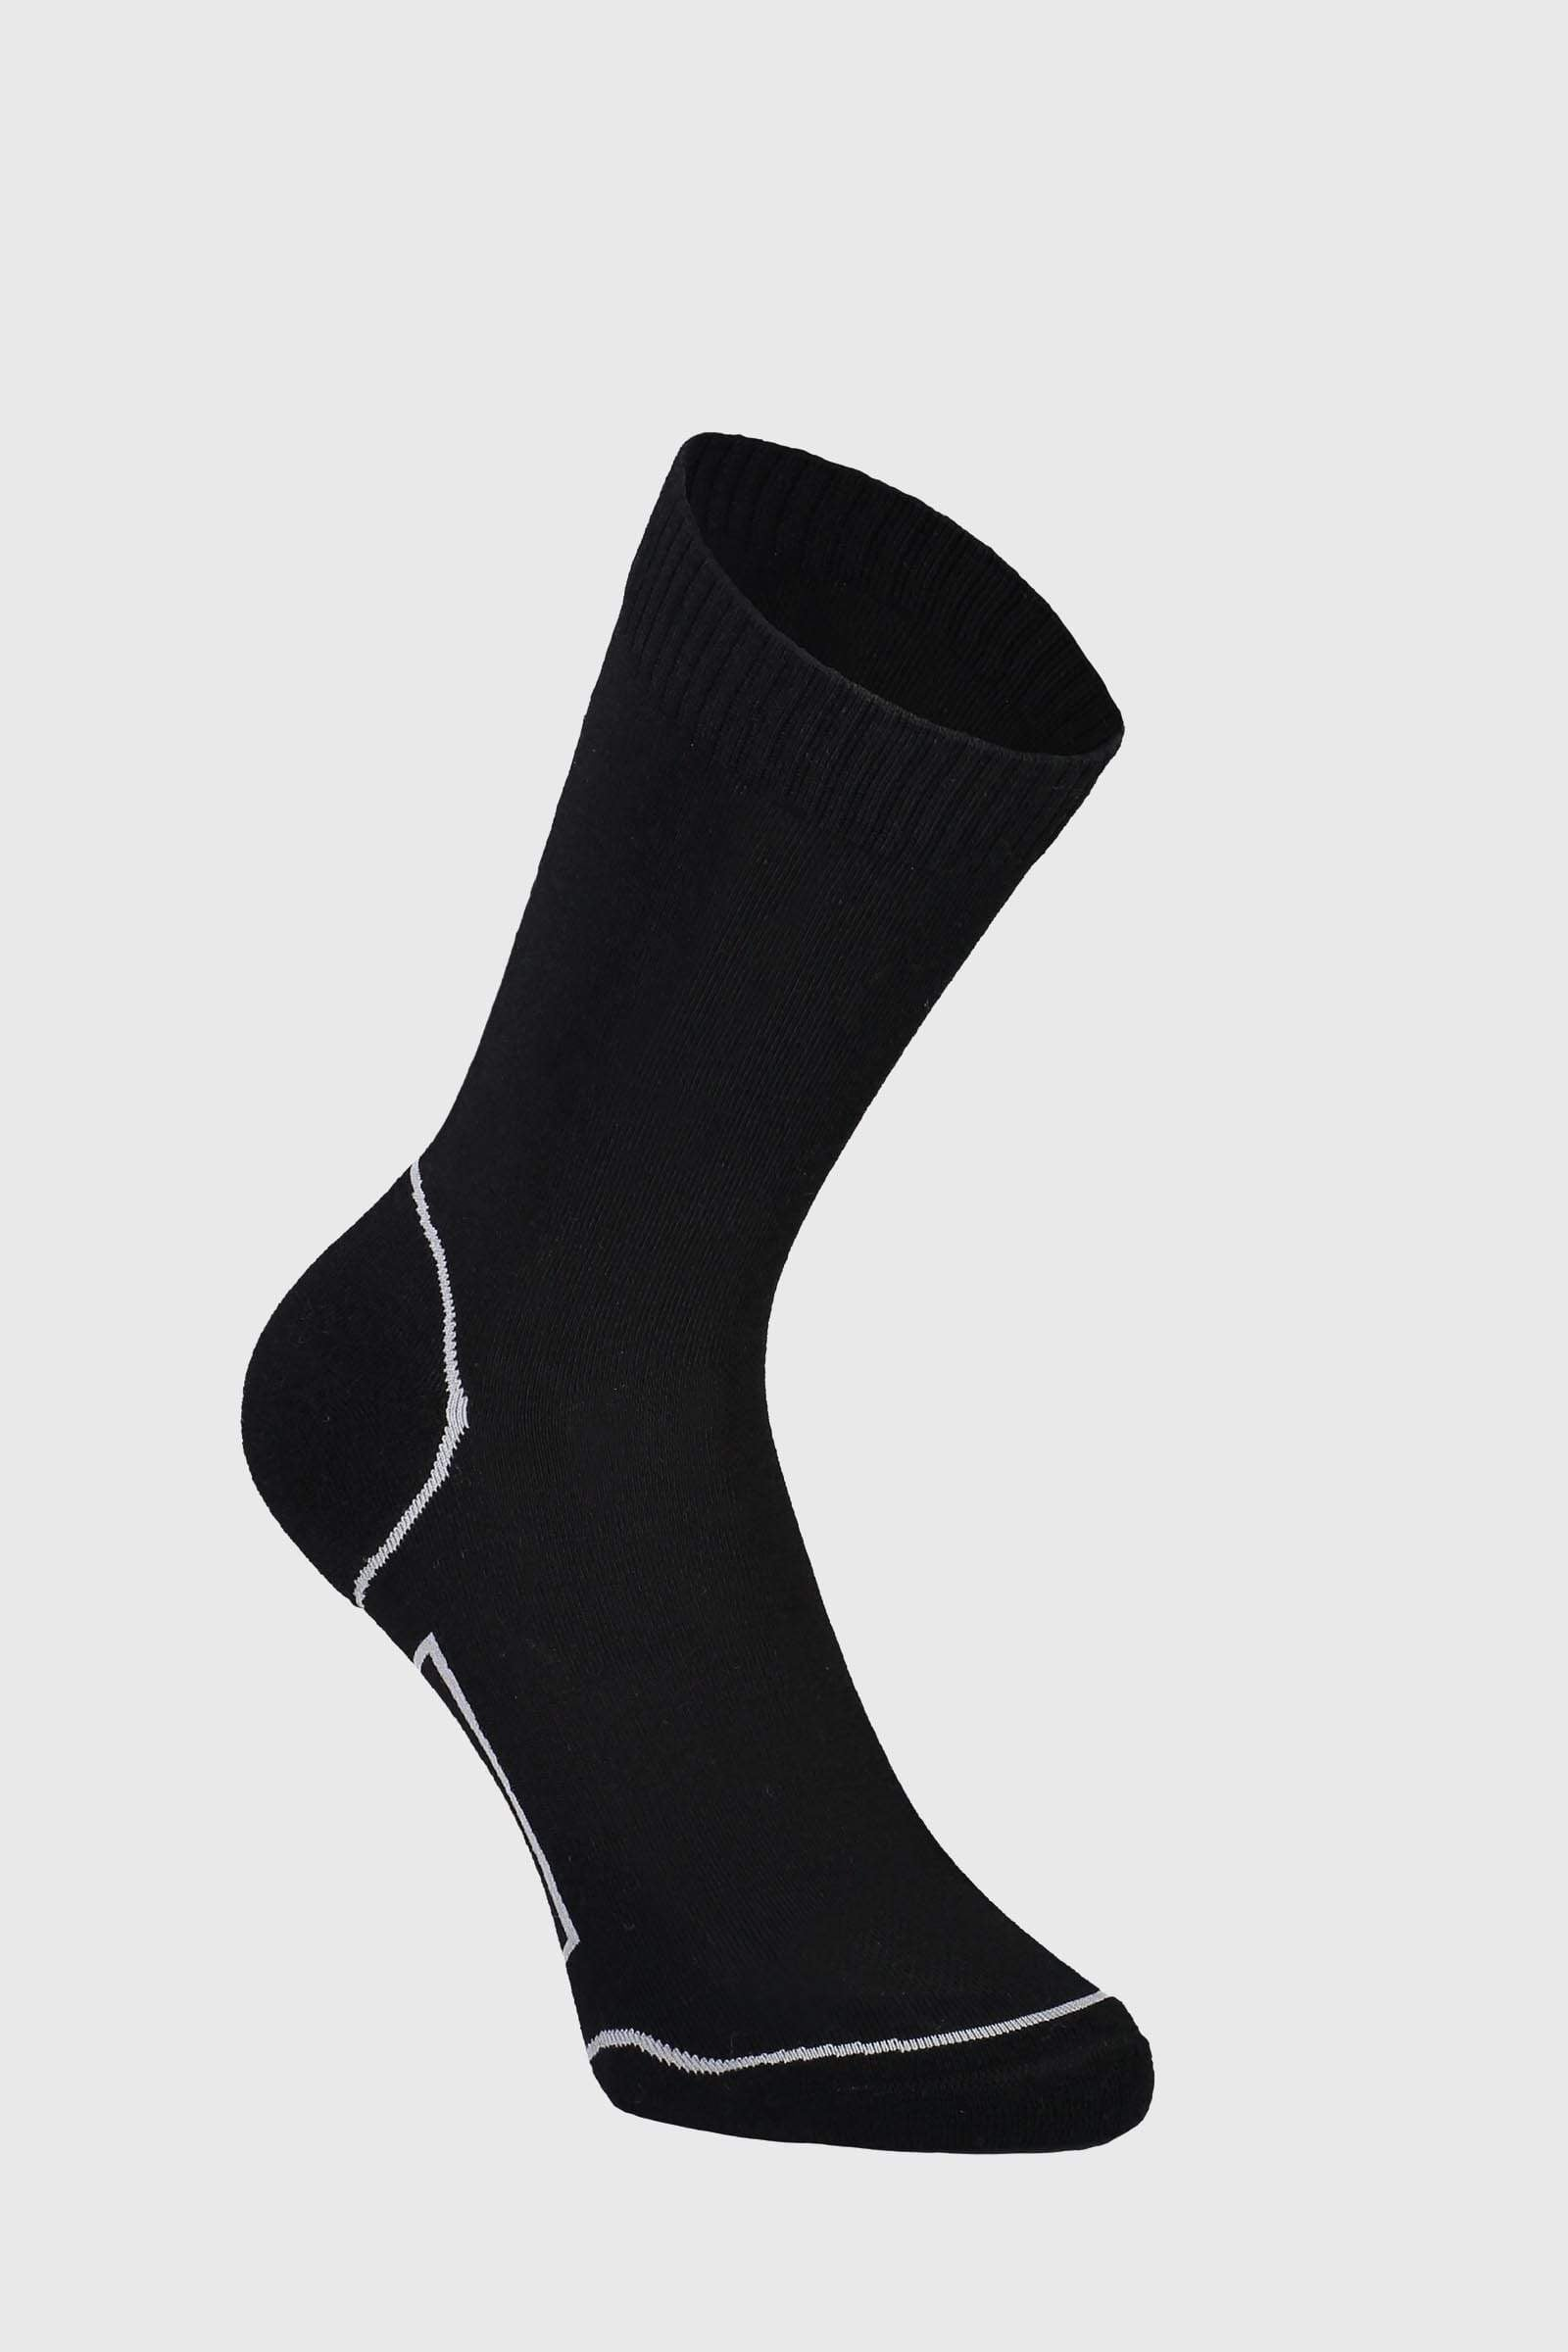 Tech Bike Sock 2.0 Womens - Black / Grey